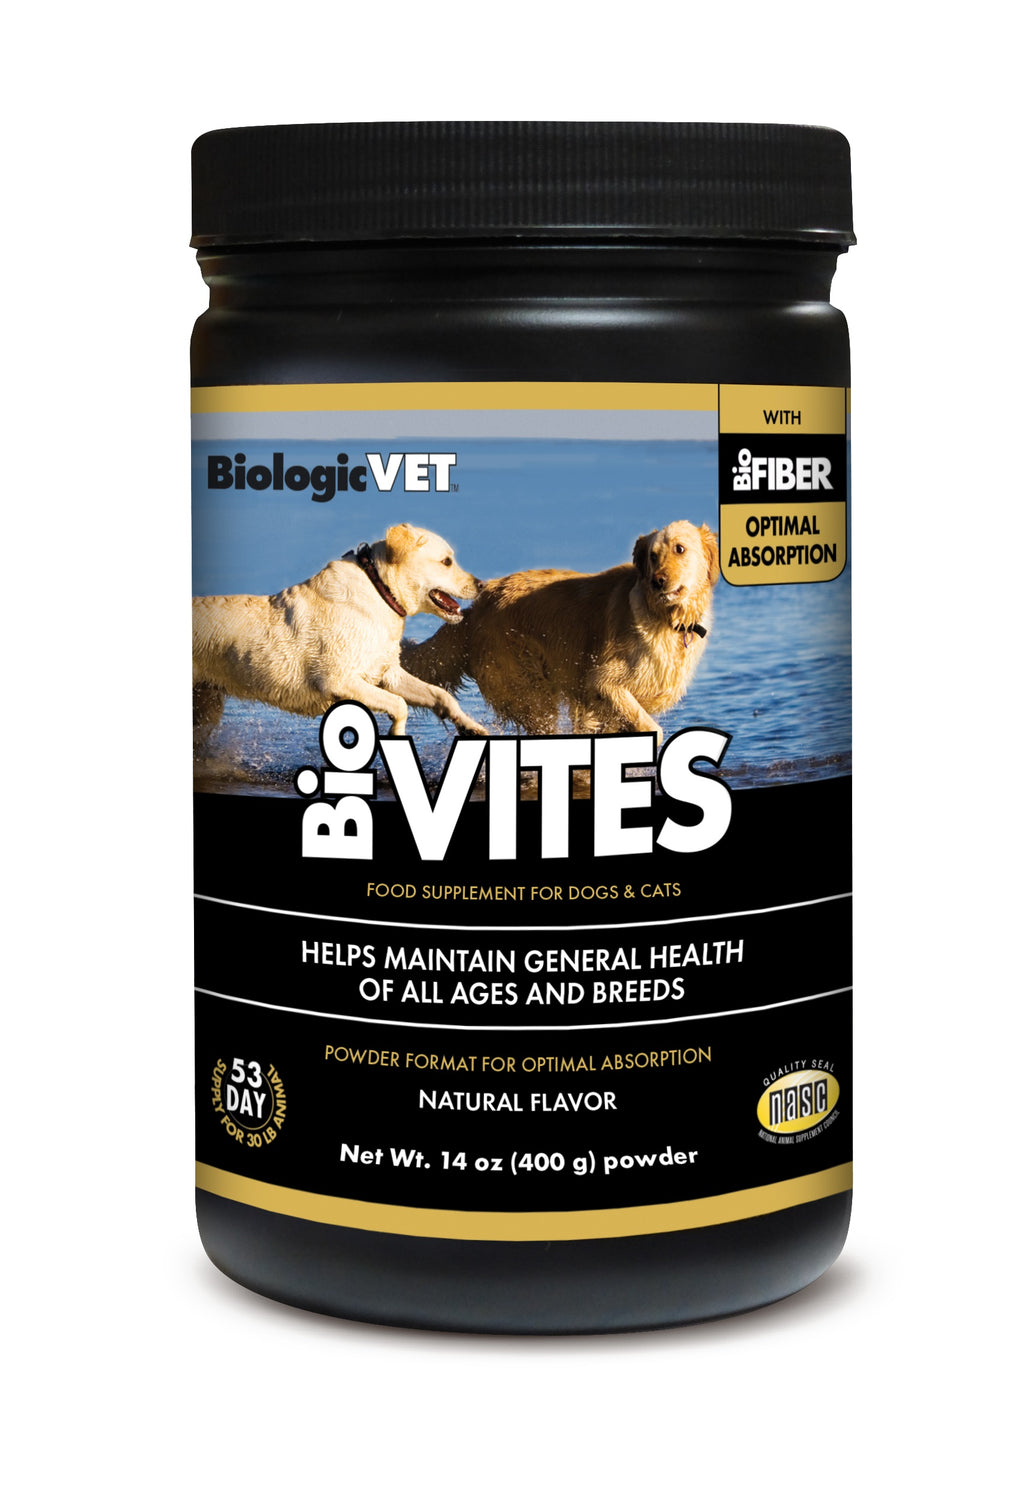 BioVITES Complete Multi-Nutrient Pet Cat & Dog Powder Supplement